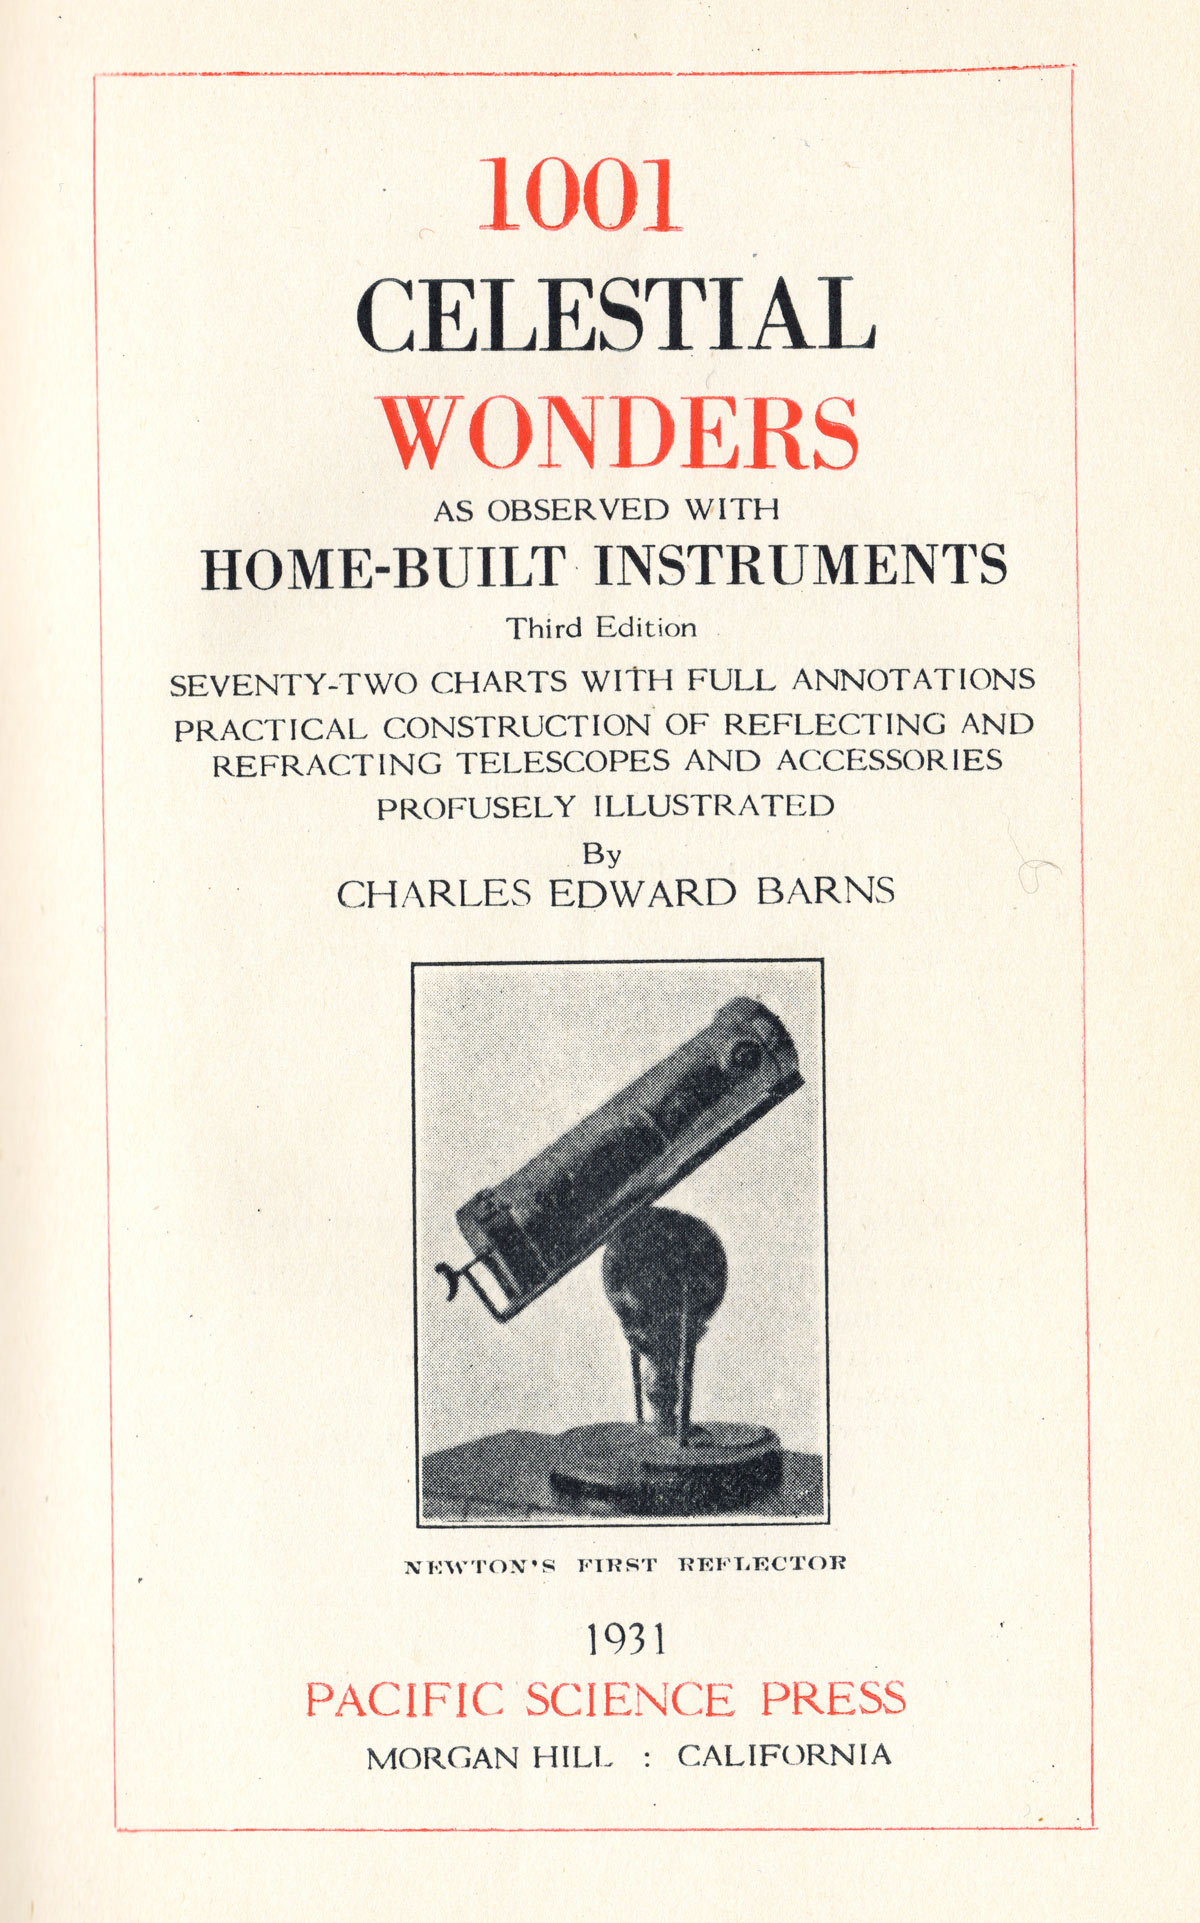 Title page of C. E. Barns's 1001 Celestial Wonders, 1931 edition.